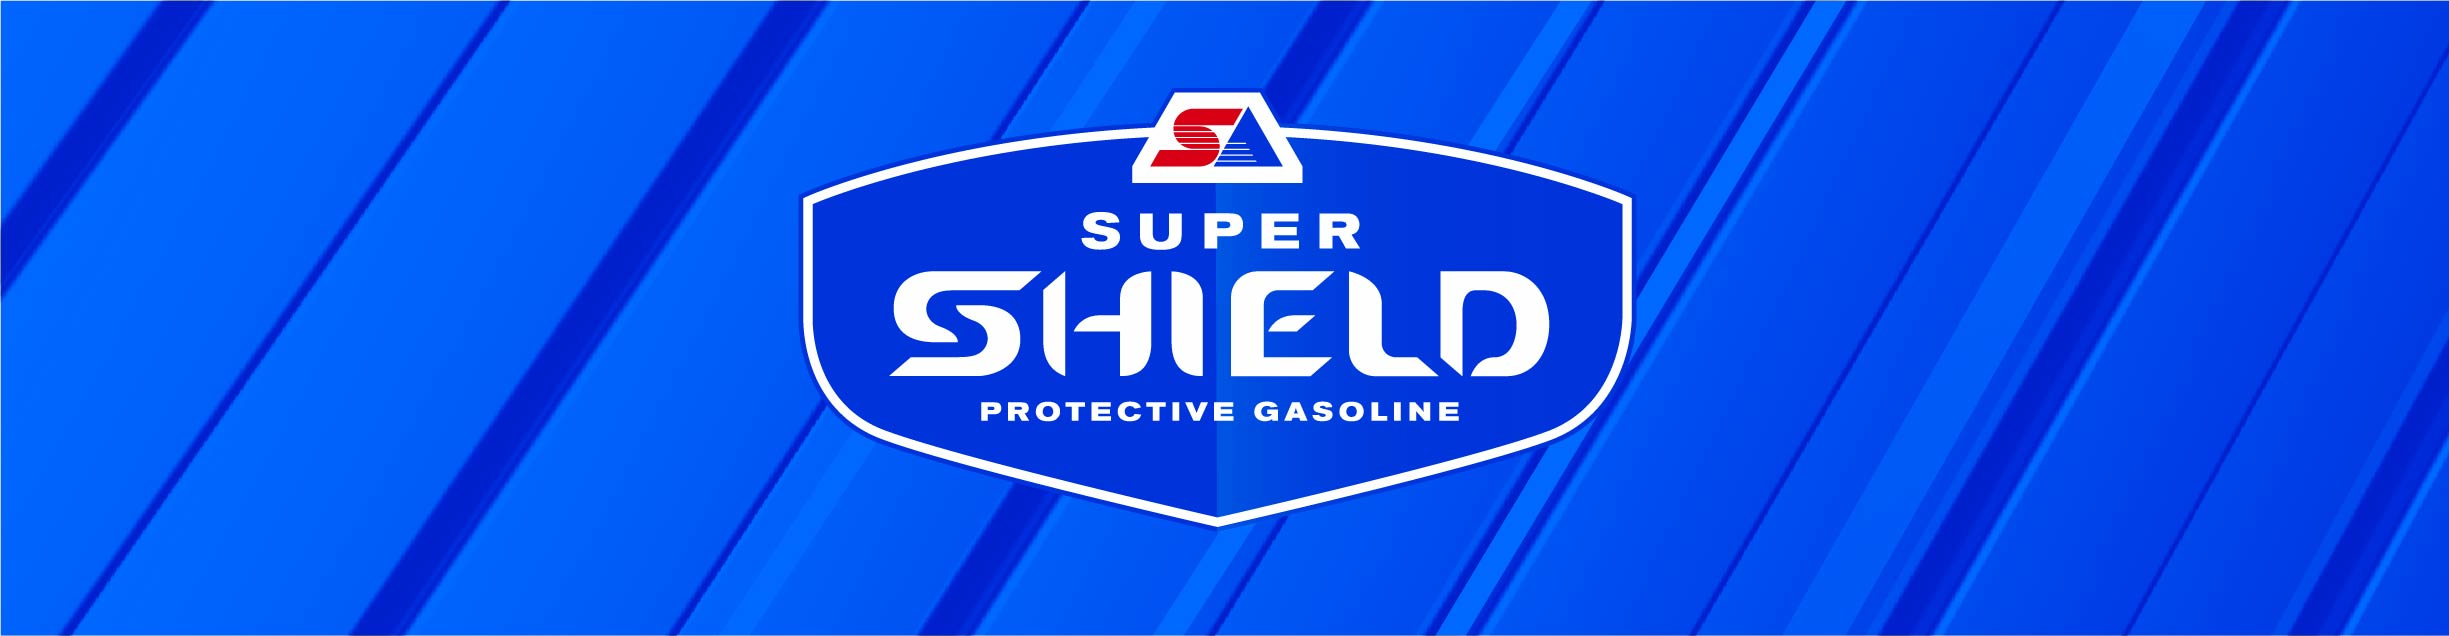 SuperShield_Concept@2x